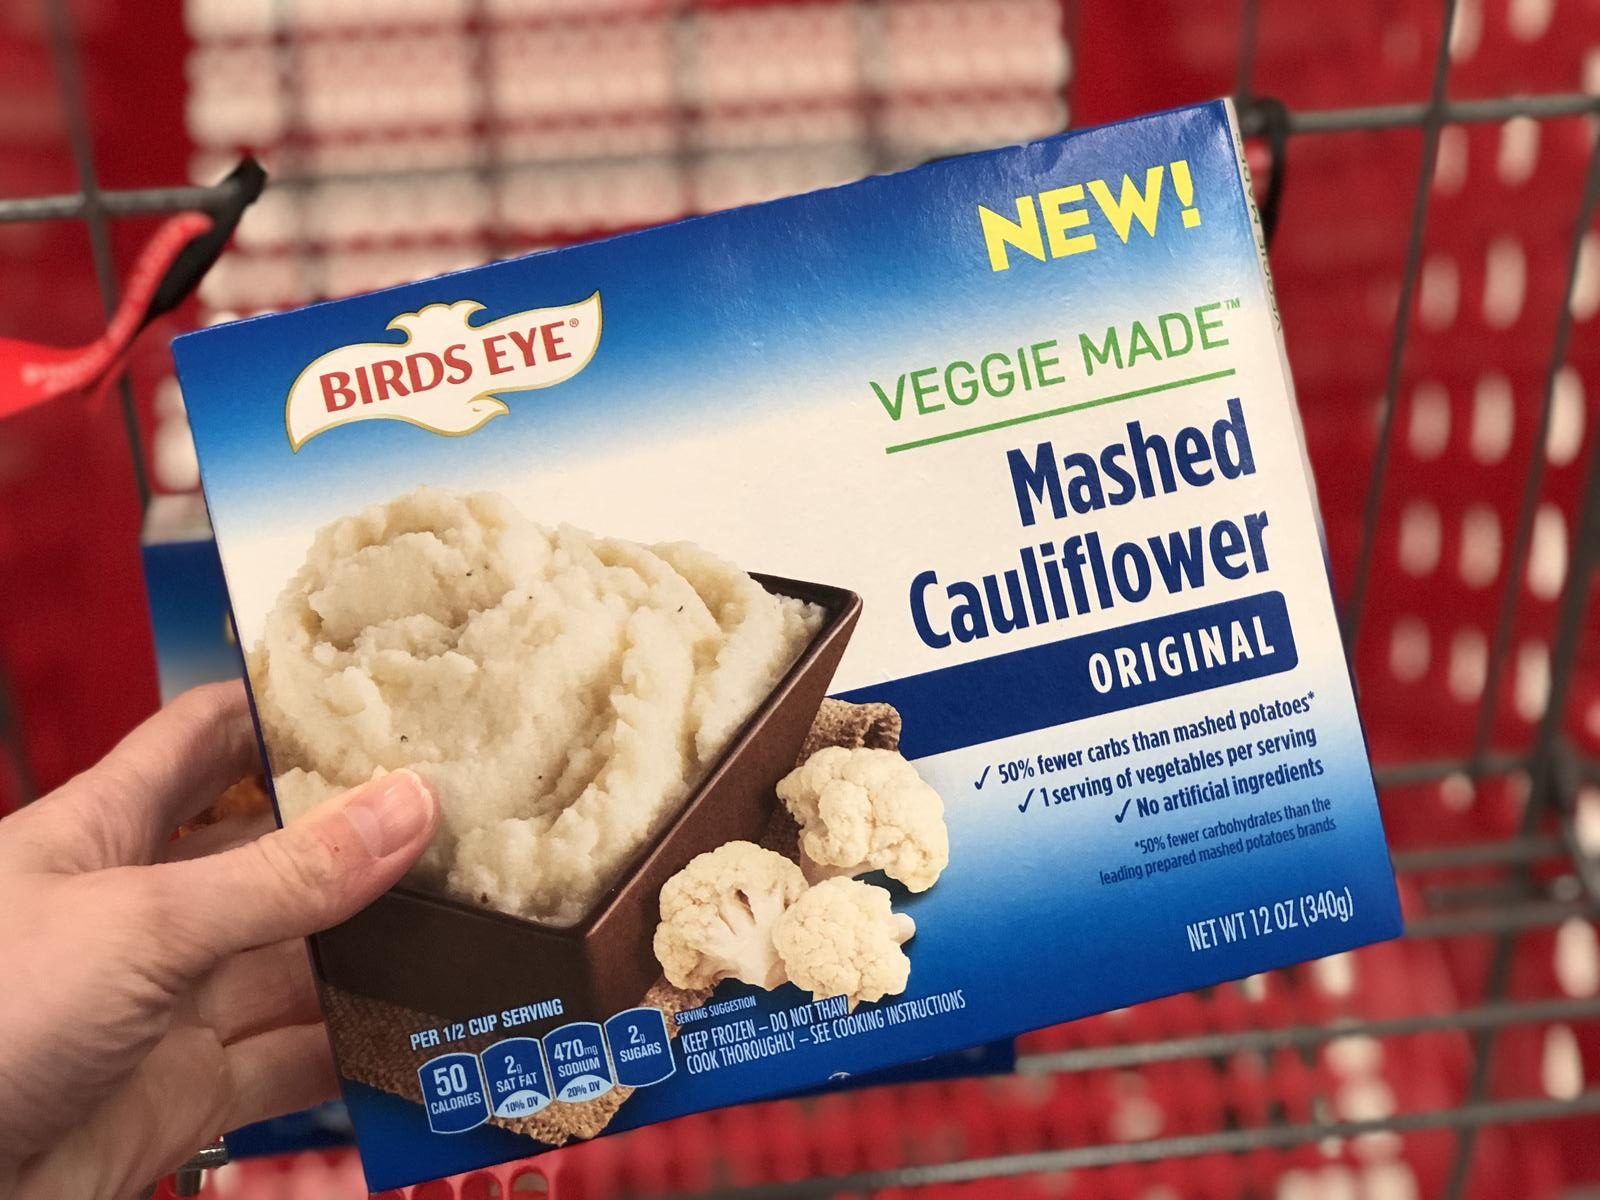 Get target deals on veggies and meats – Birds Eye Veggie Made Mashed Cauliflower at Target